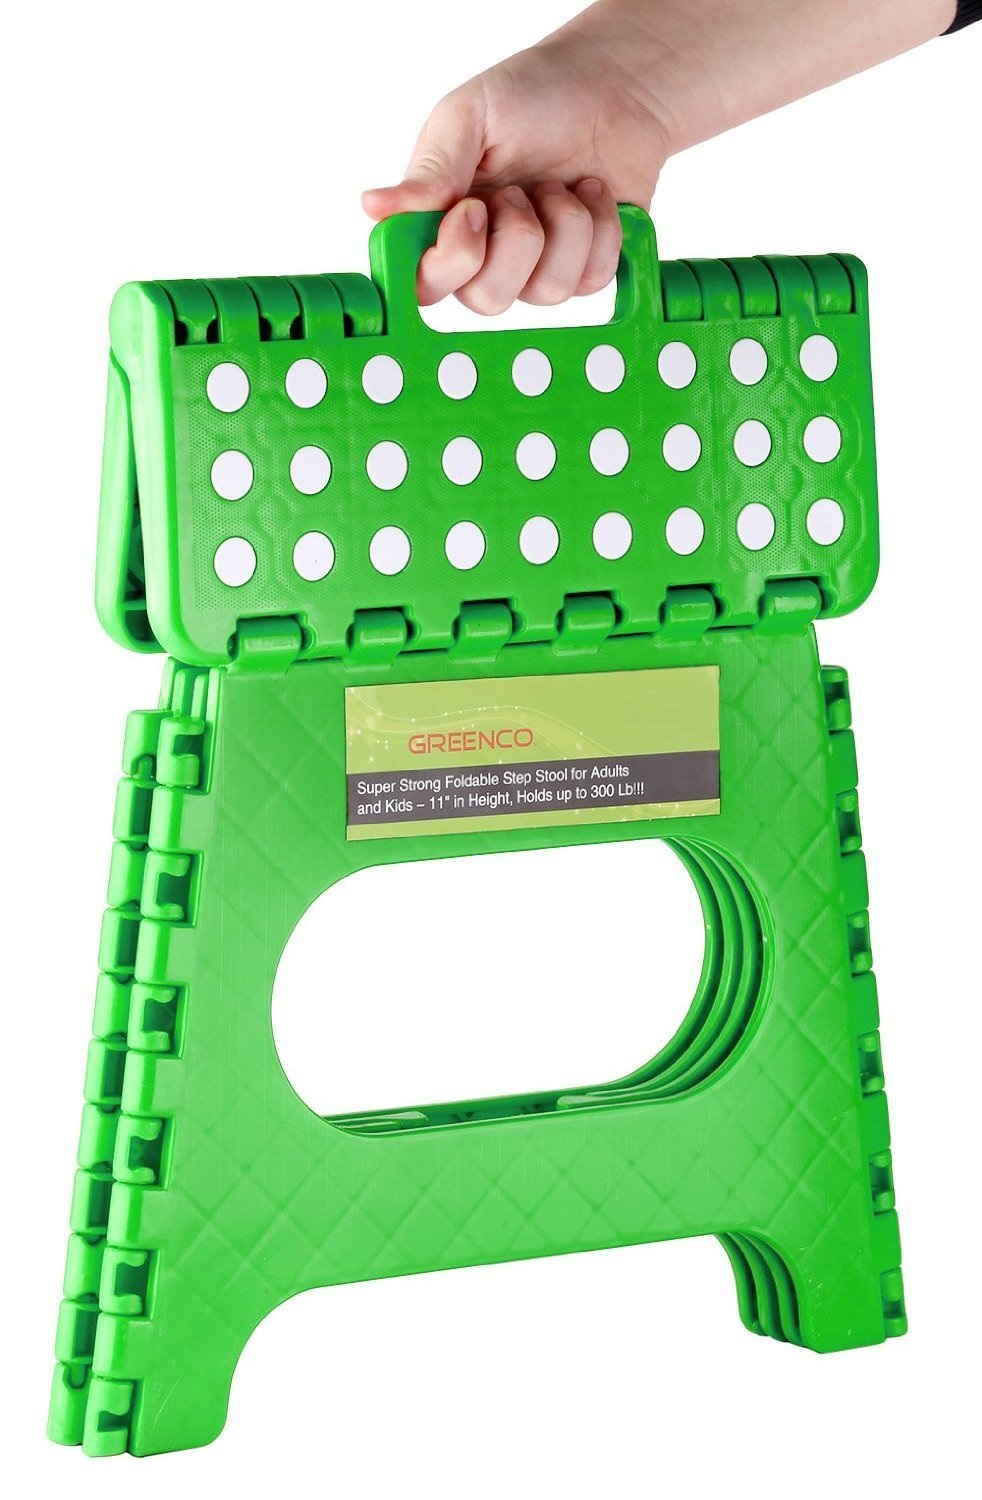 Hurry over and grab this Greenco Super Strong Foldable Step Stool for Adults and Kids 11u2033 Red Or Green Only $9.99 Down From $18.99! greenco  sc 1 st  Saving with Vetta & Greenco Super Strong Foldable Step Stool for Adults and Kids 11 ... islam-shia.org